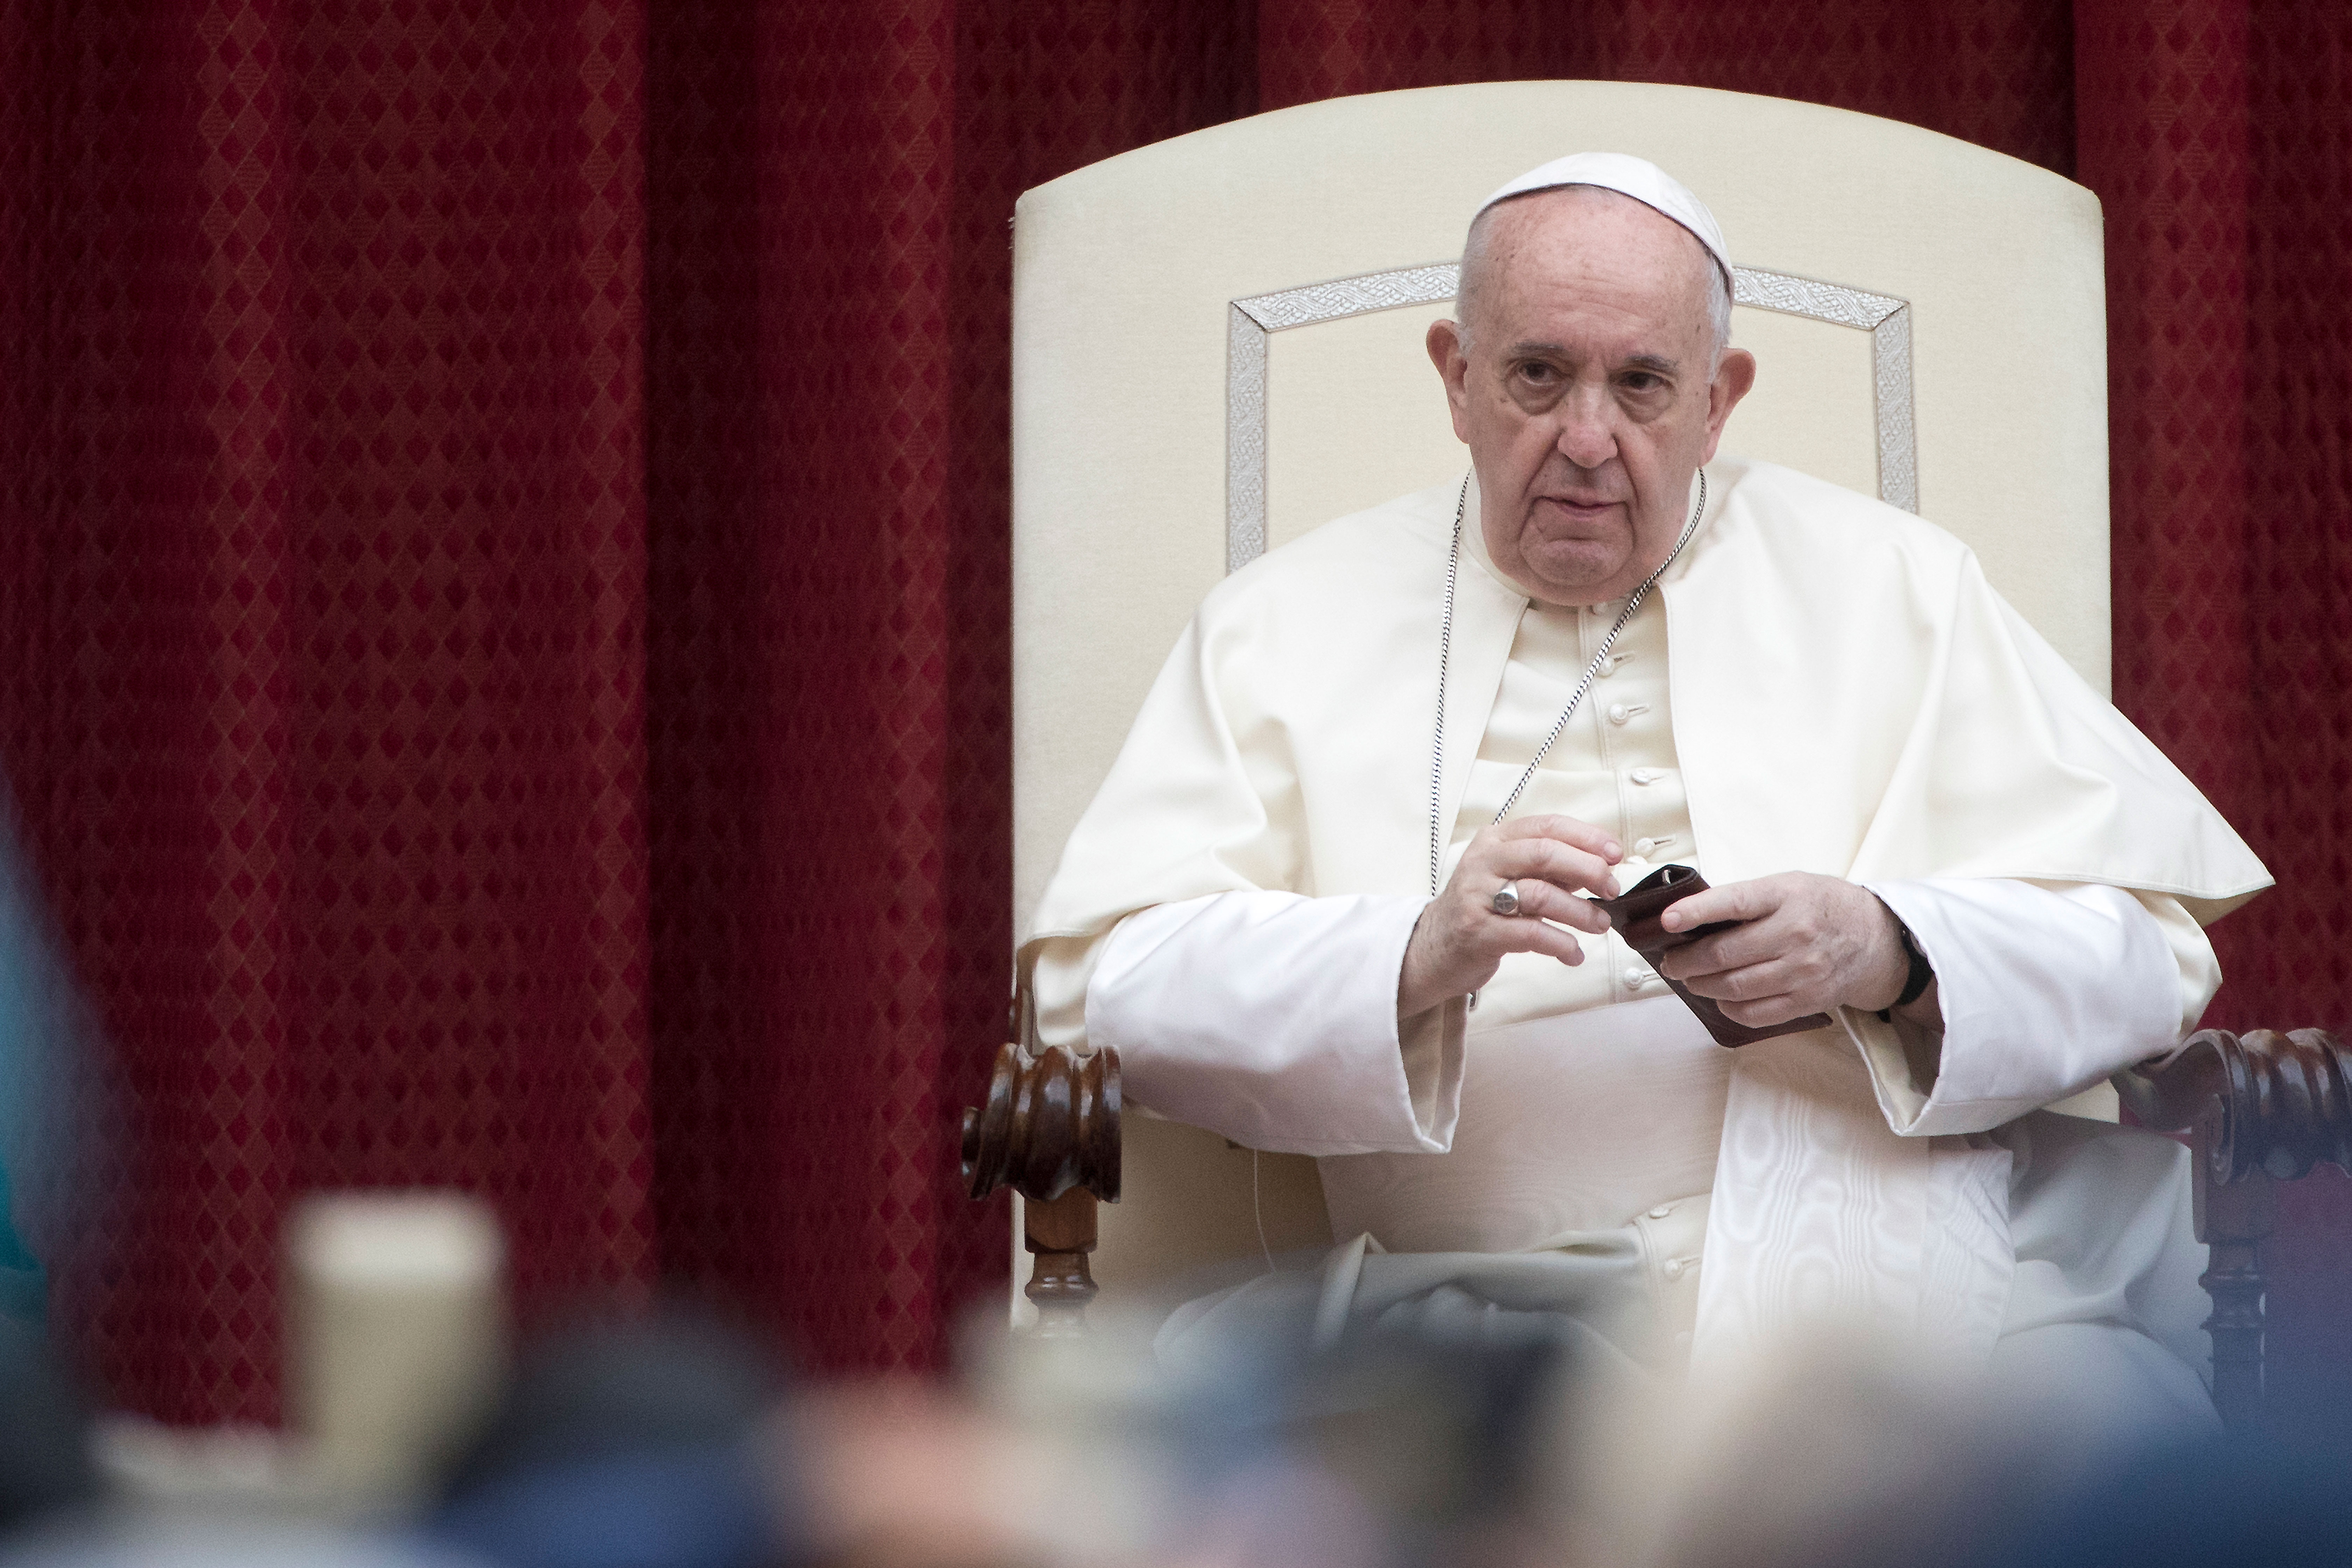 Pope Francis leads a general weekly audience in Vatican City on September 23.